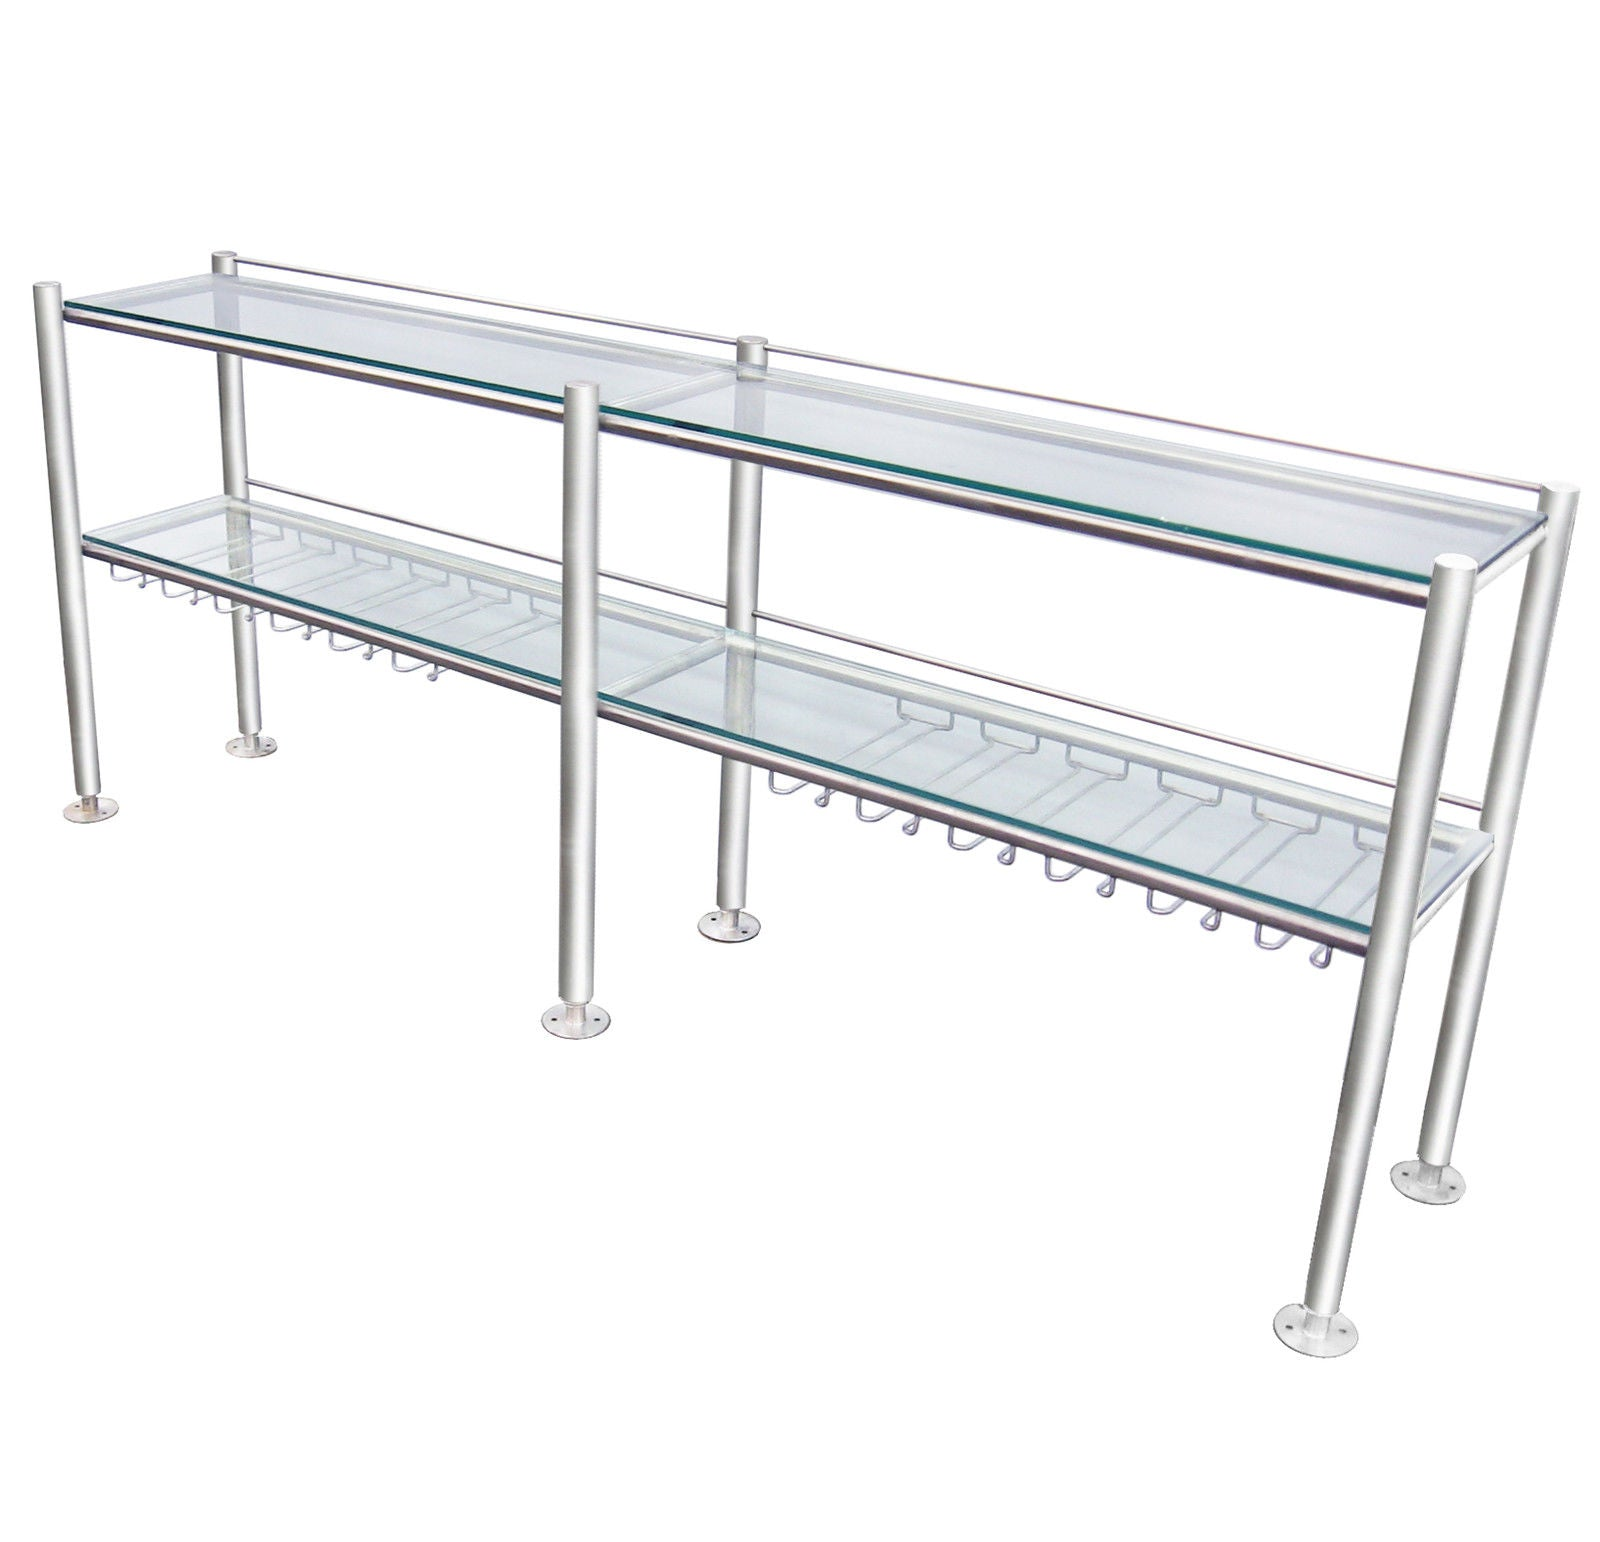 "STAINLESS STEEL COMMERCIAL WINE RACK, WITH 2 TEMPERED CLEAR GLASS 3/8""  SHELVES - Best Sheet Metal, Inc."